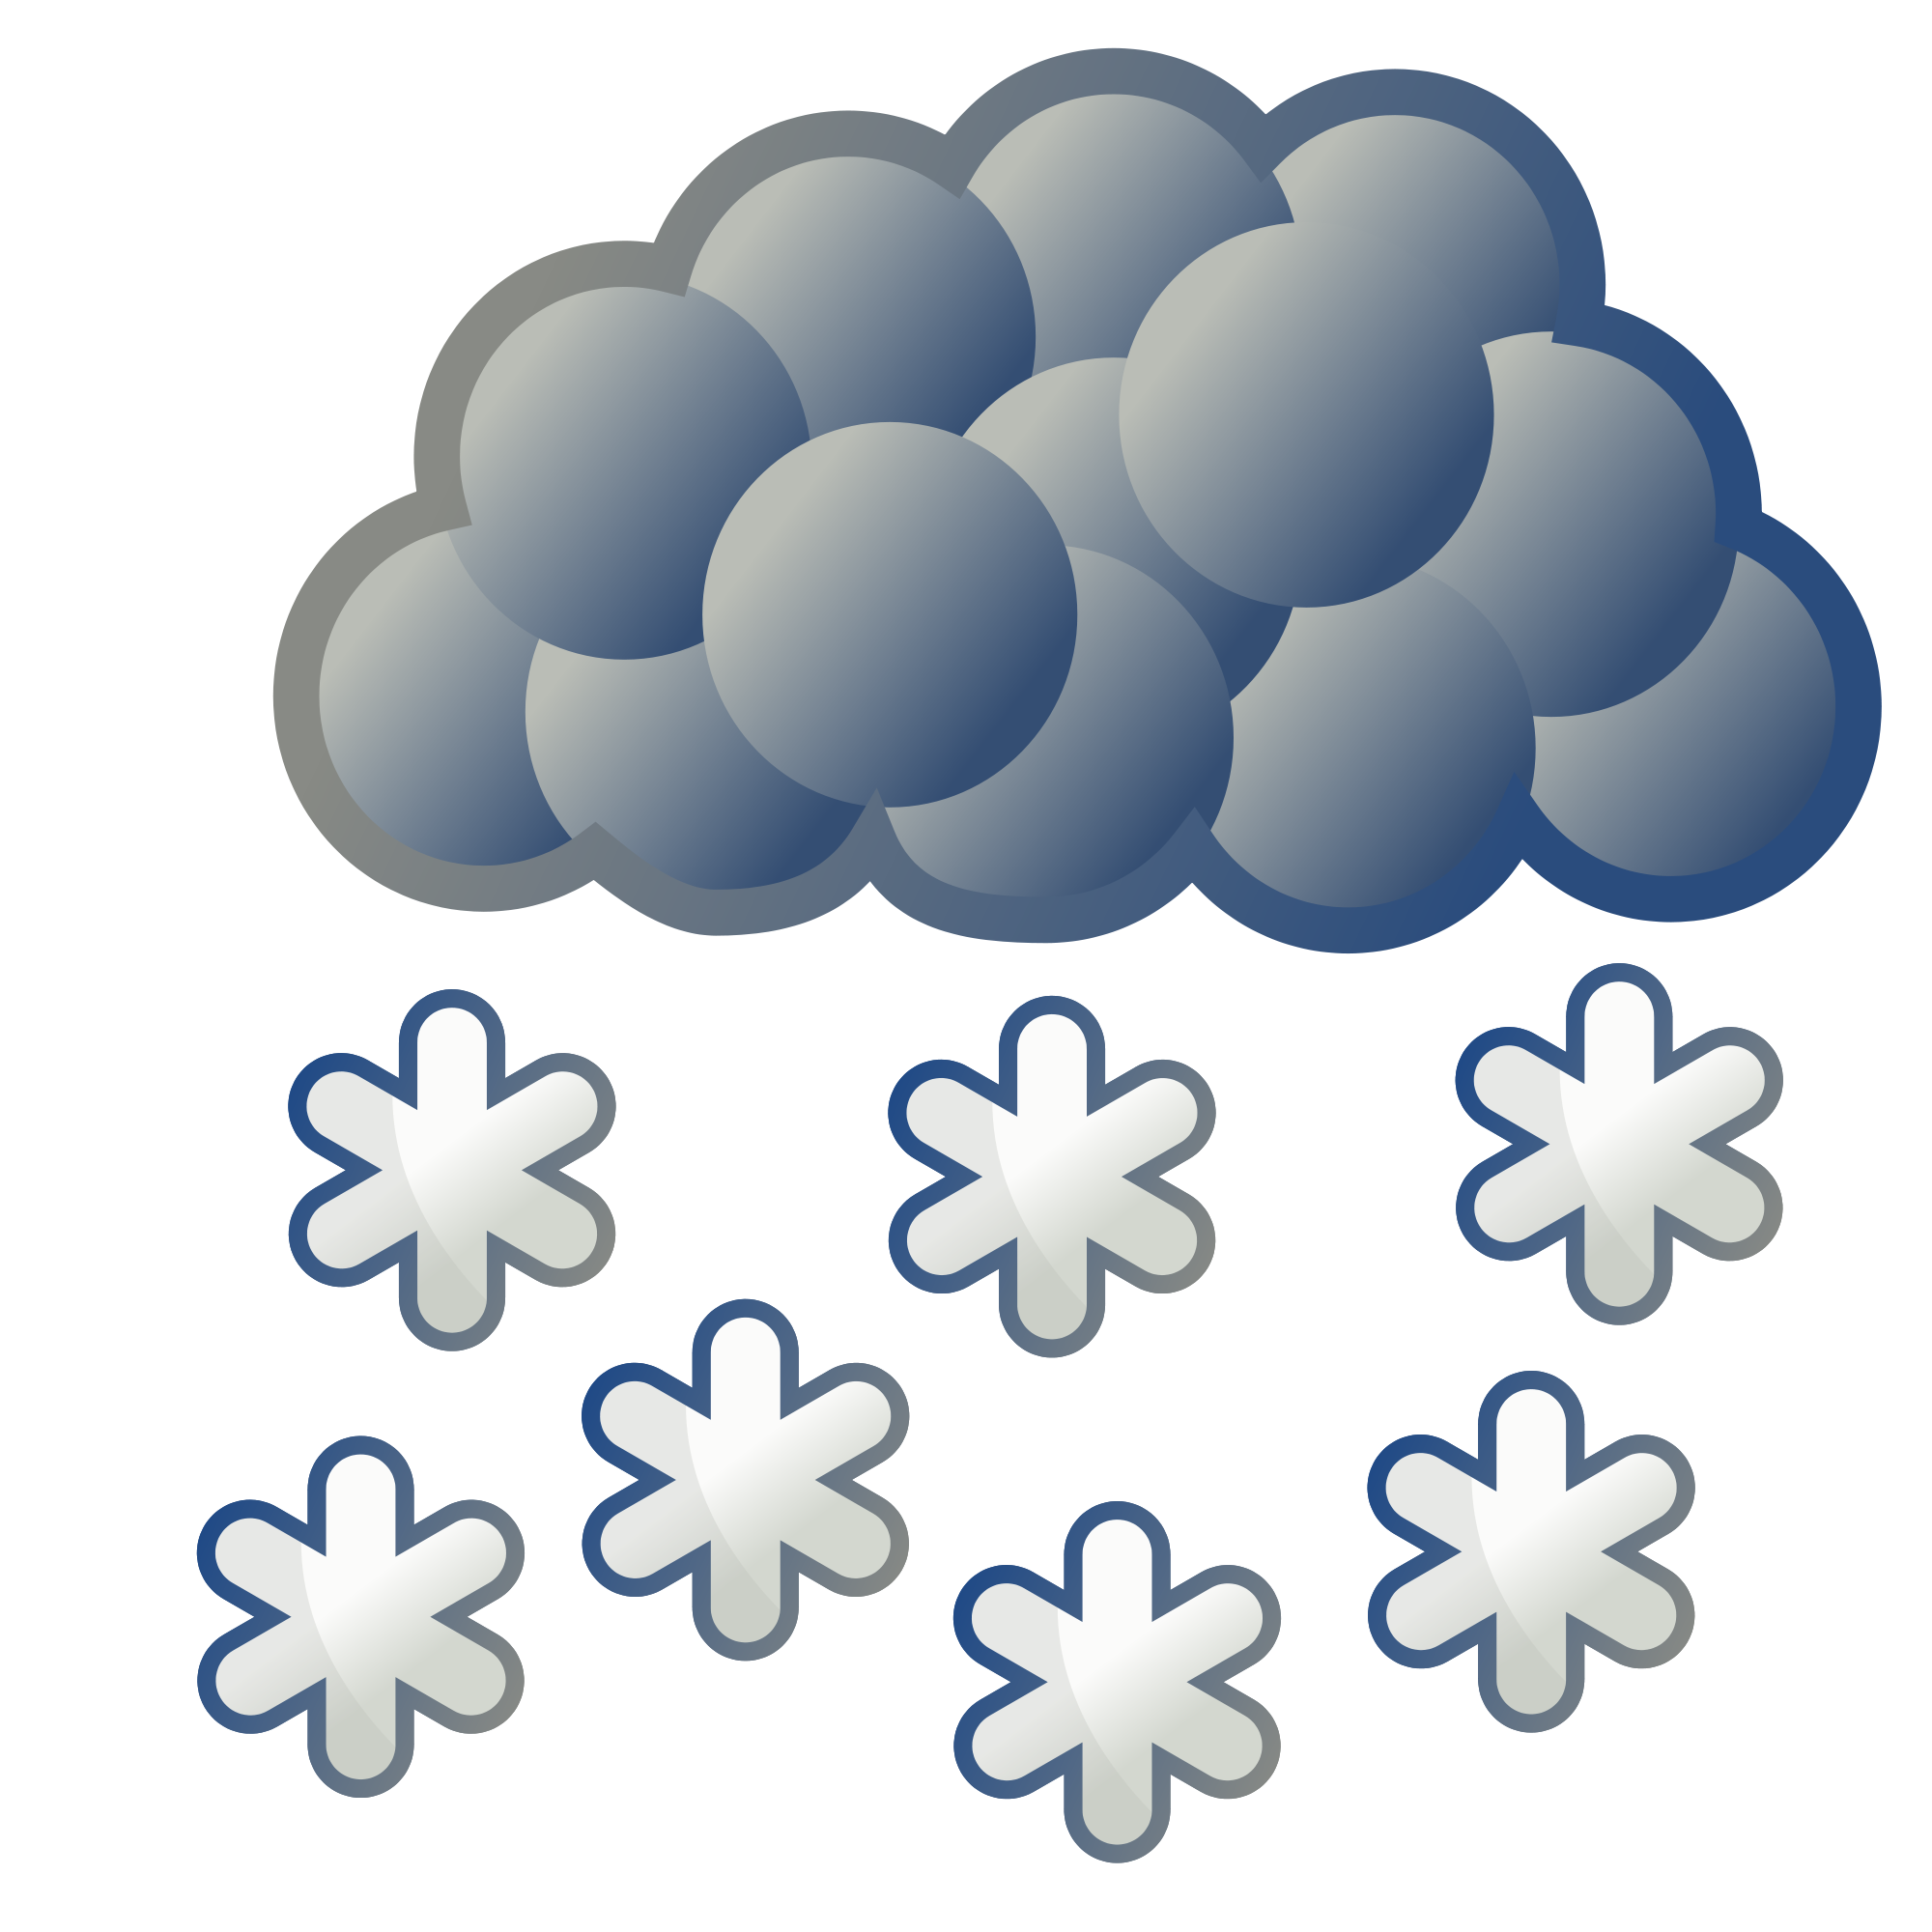 Snow svg weather. File nuvola wikimedia commons